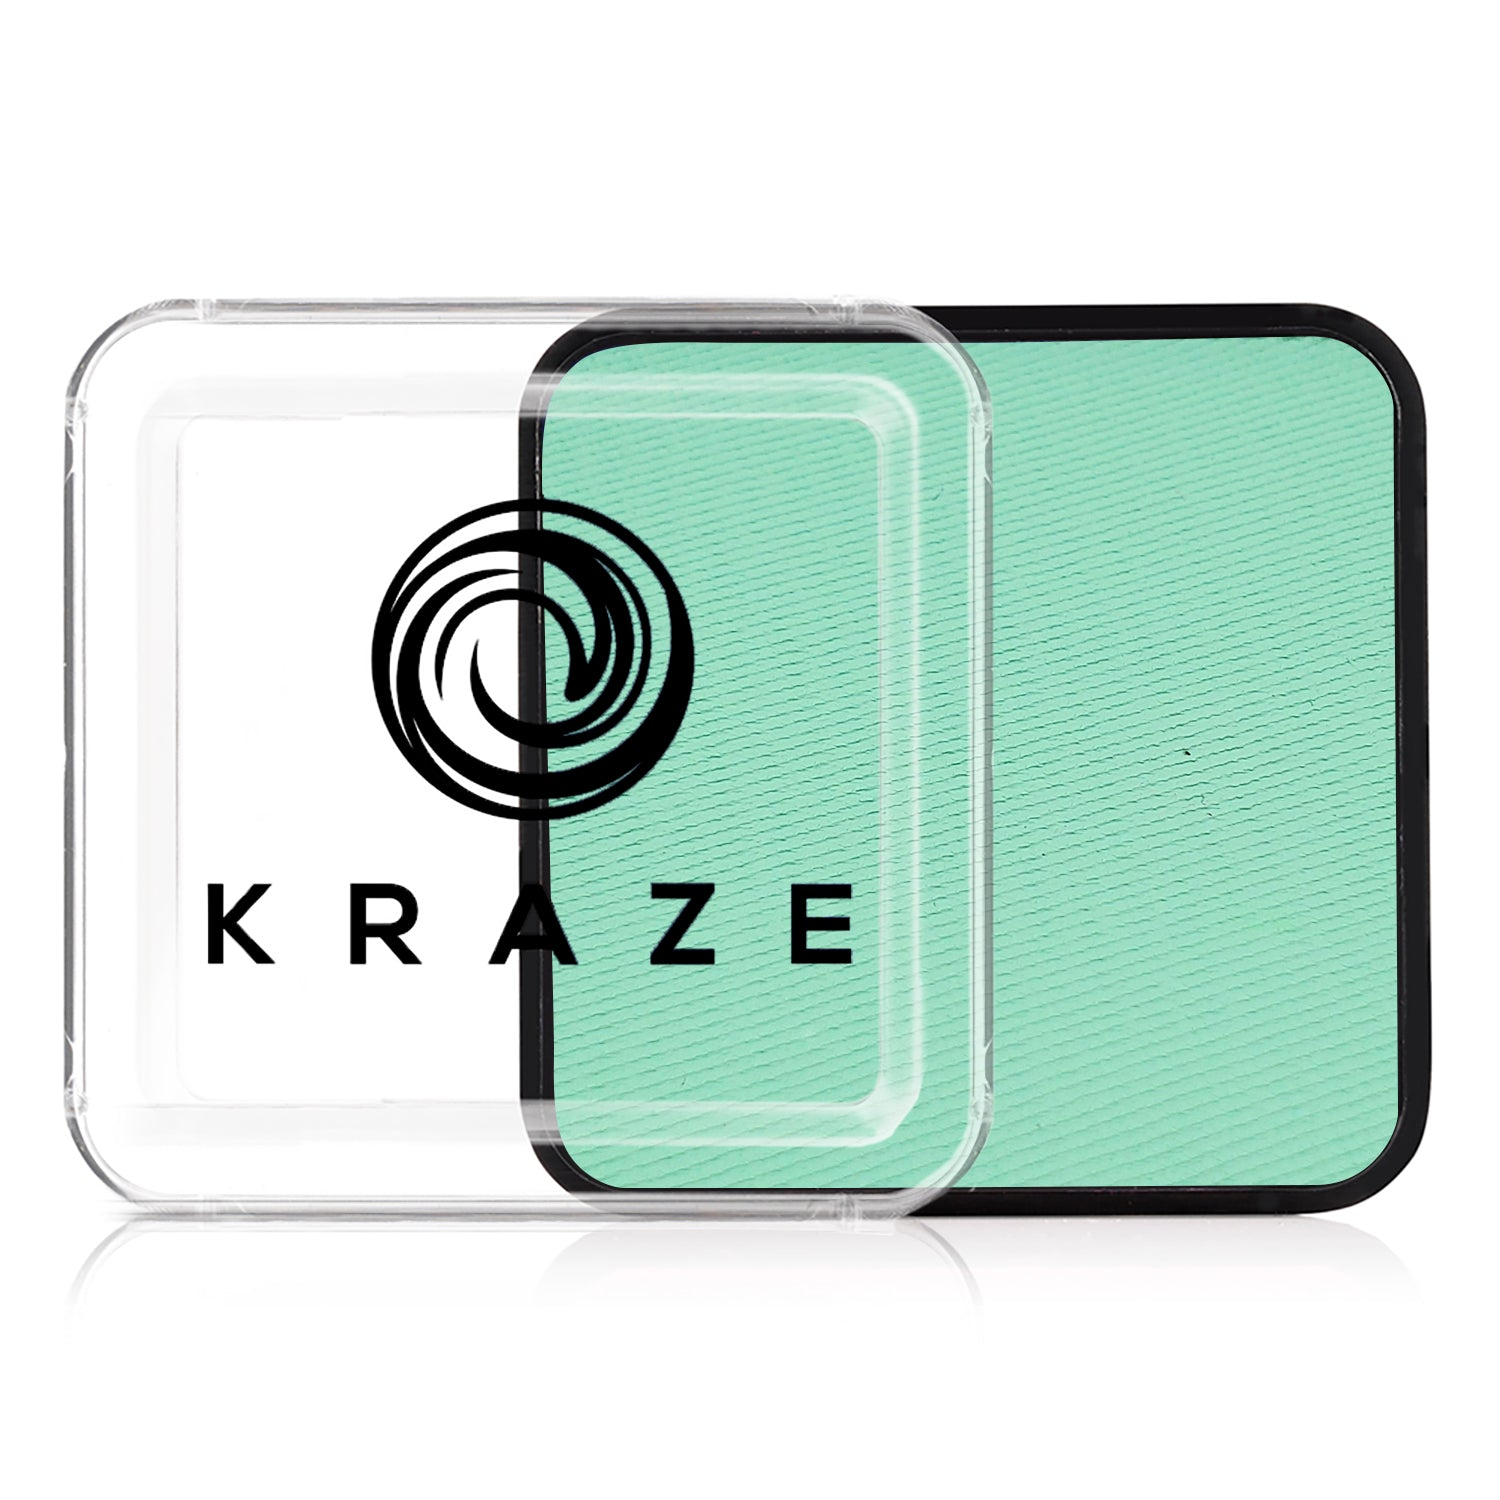 Kraze Mint Green Square - 25 gm